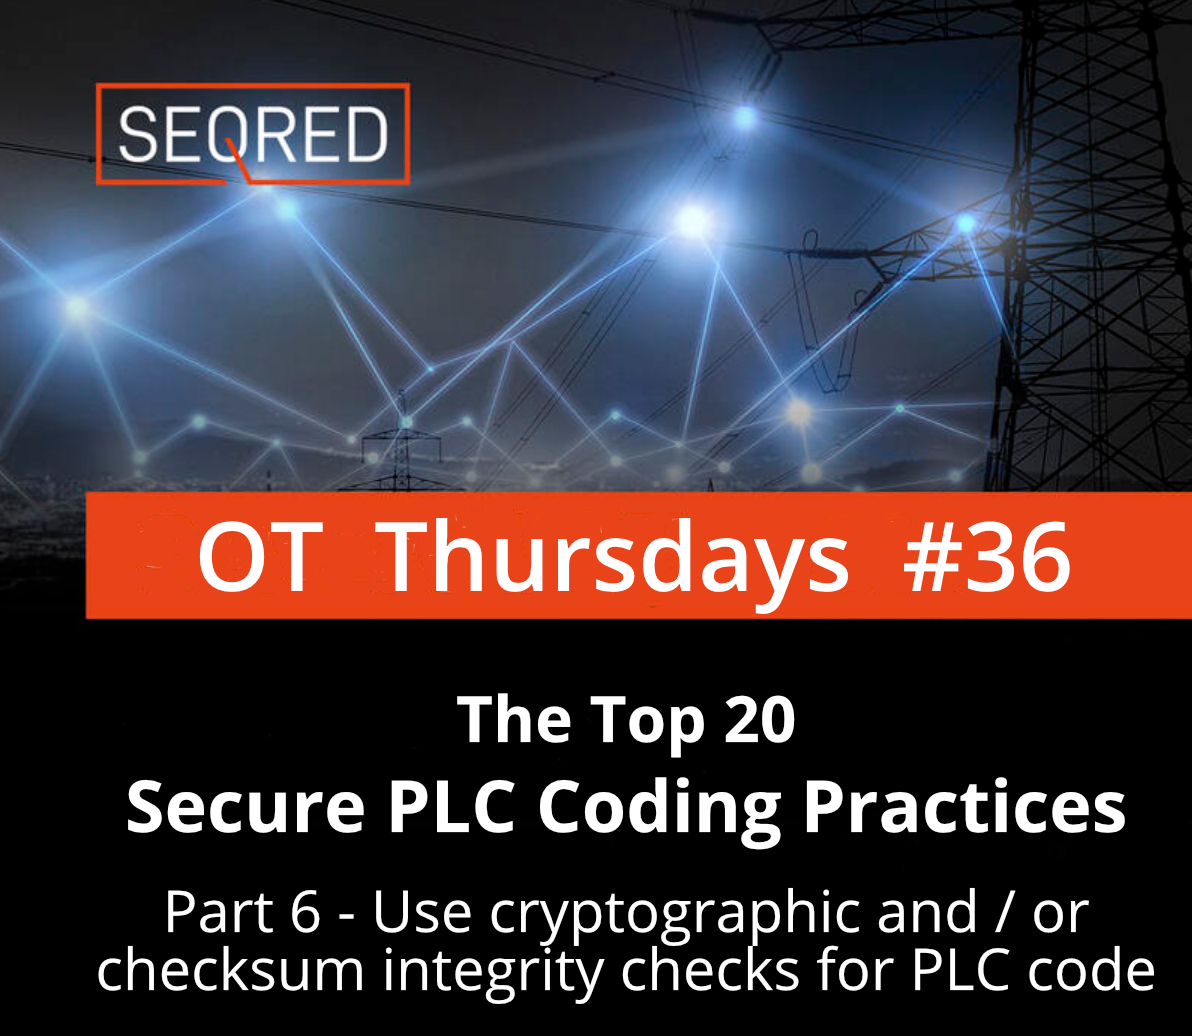 The Top 20 Secure PLC Coding Practices. Part 6 - Use cryptographic and / or checksum integrity checks for PLC code